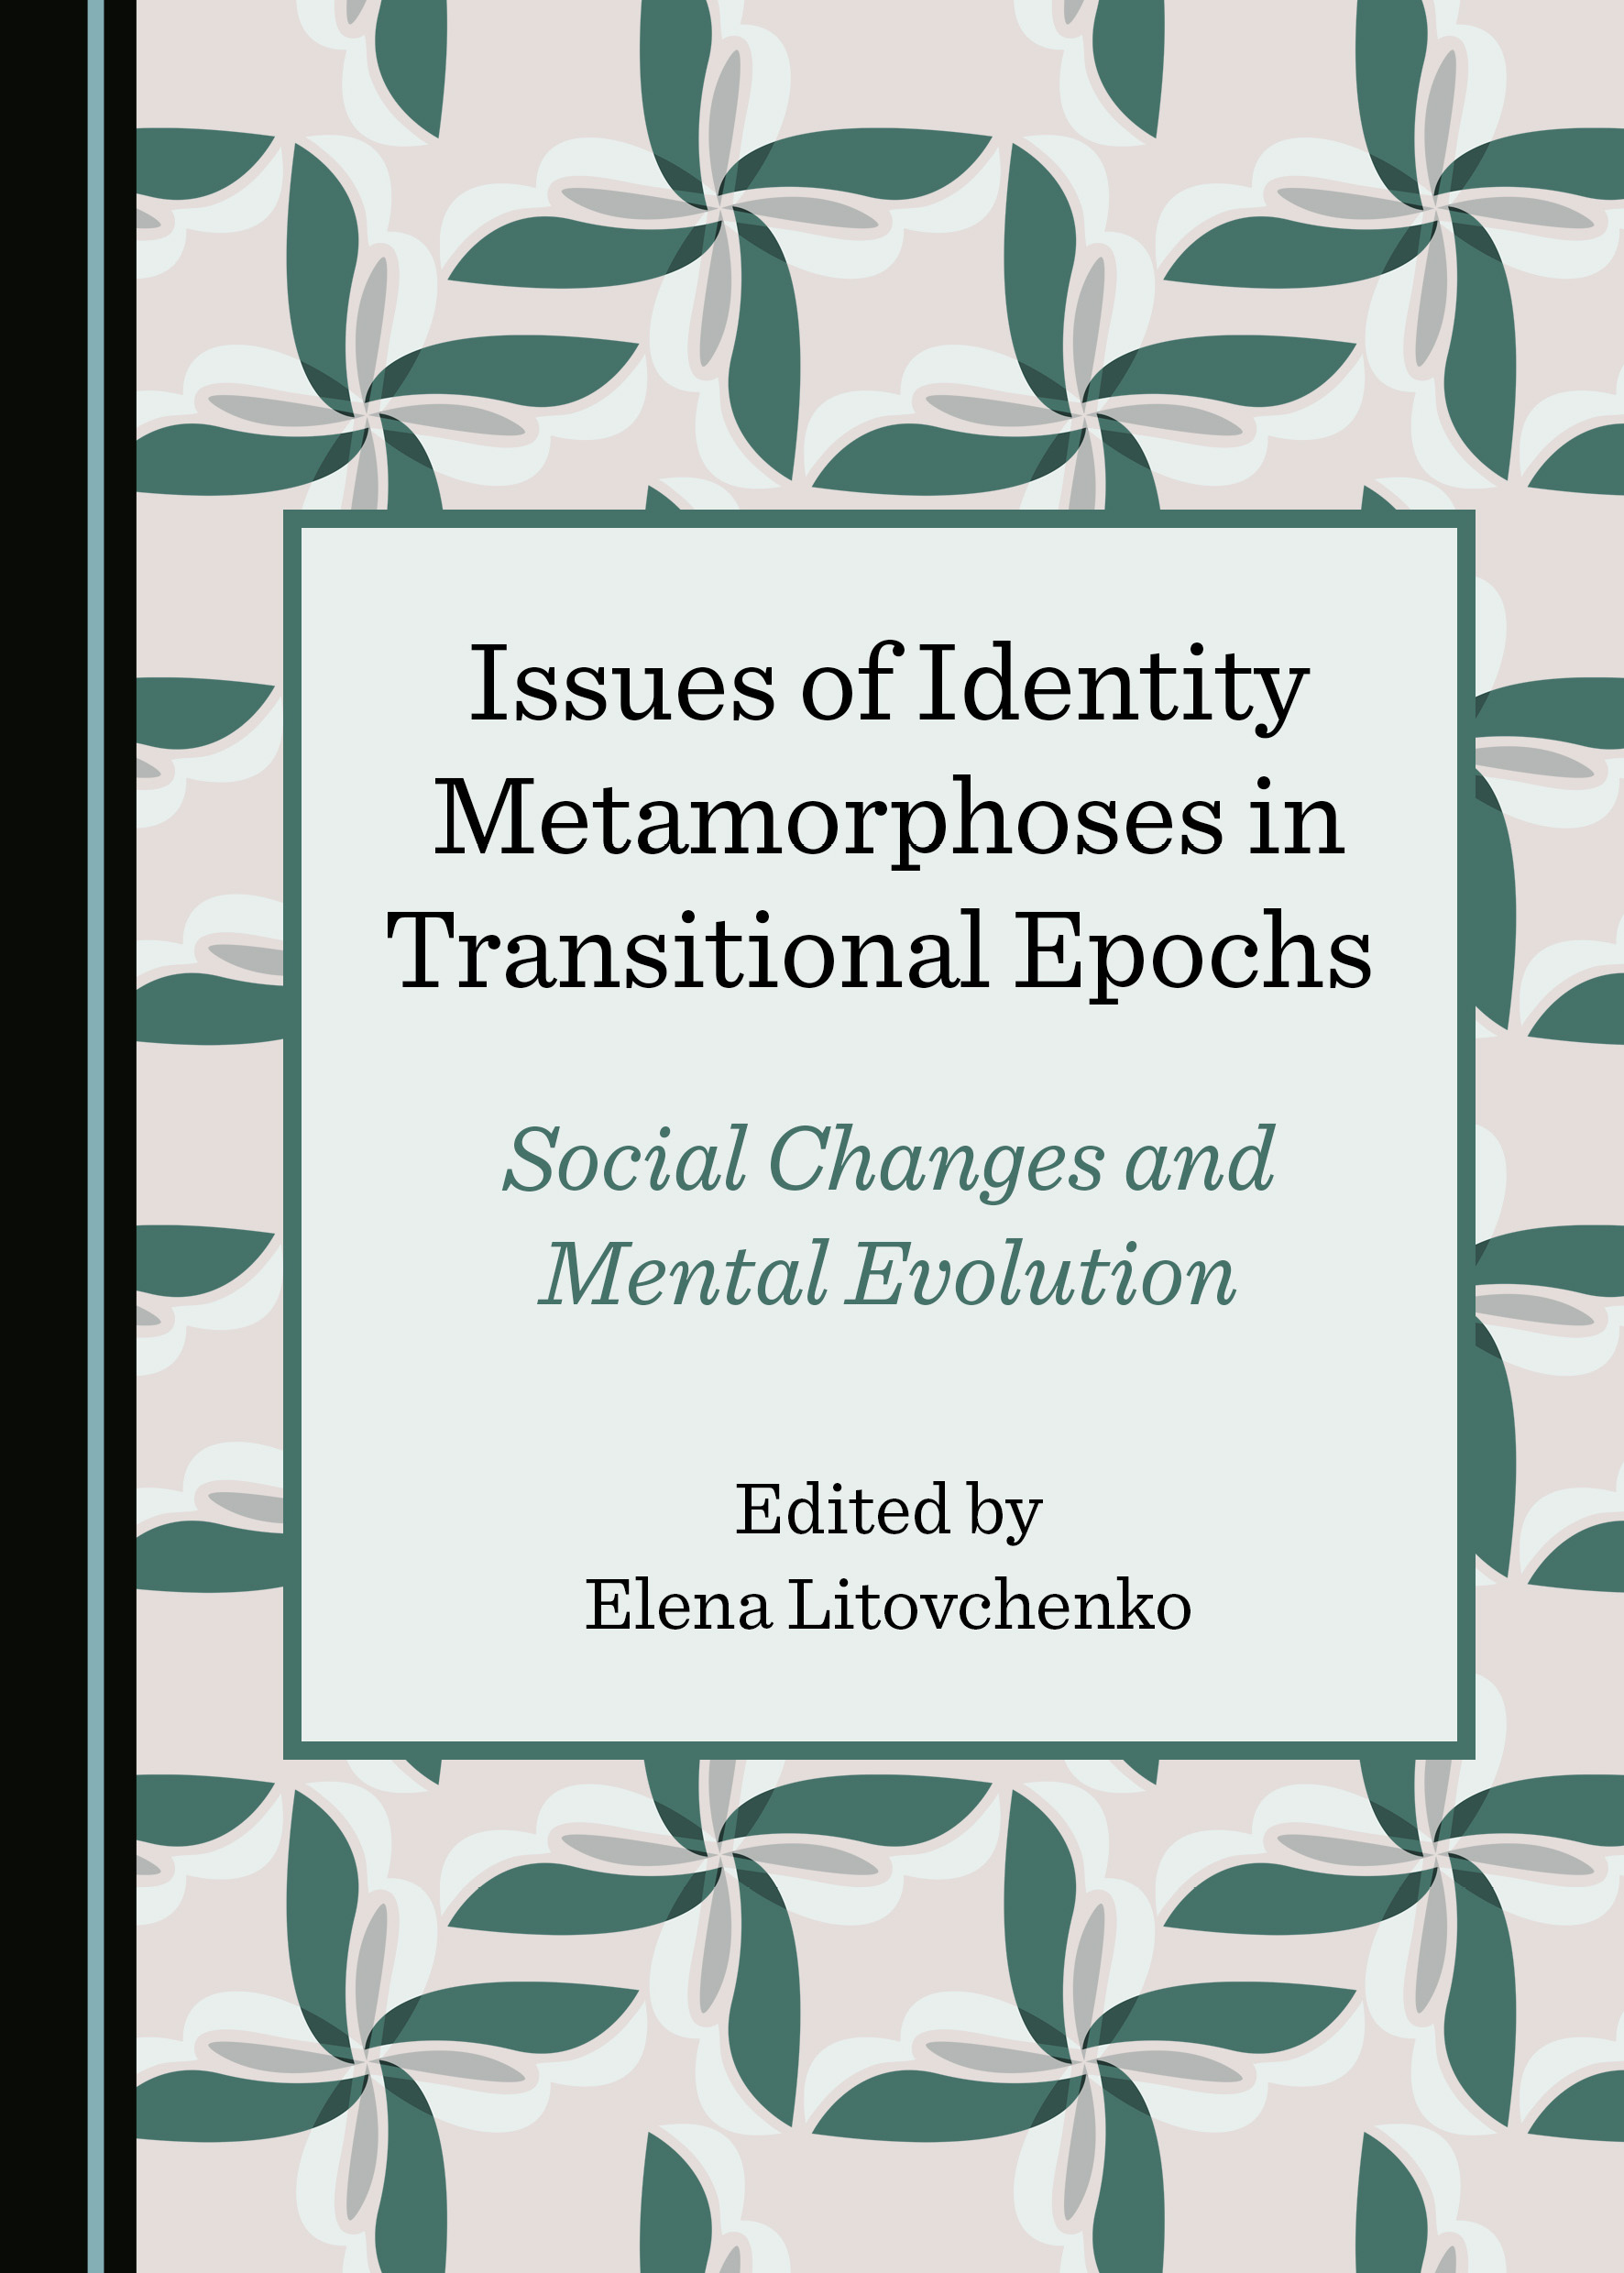 Issues of Identity Metamorphoses in Transitional Epochs: Social Changes and Mental Evolution